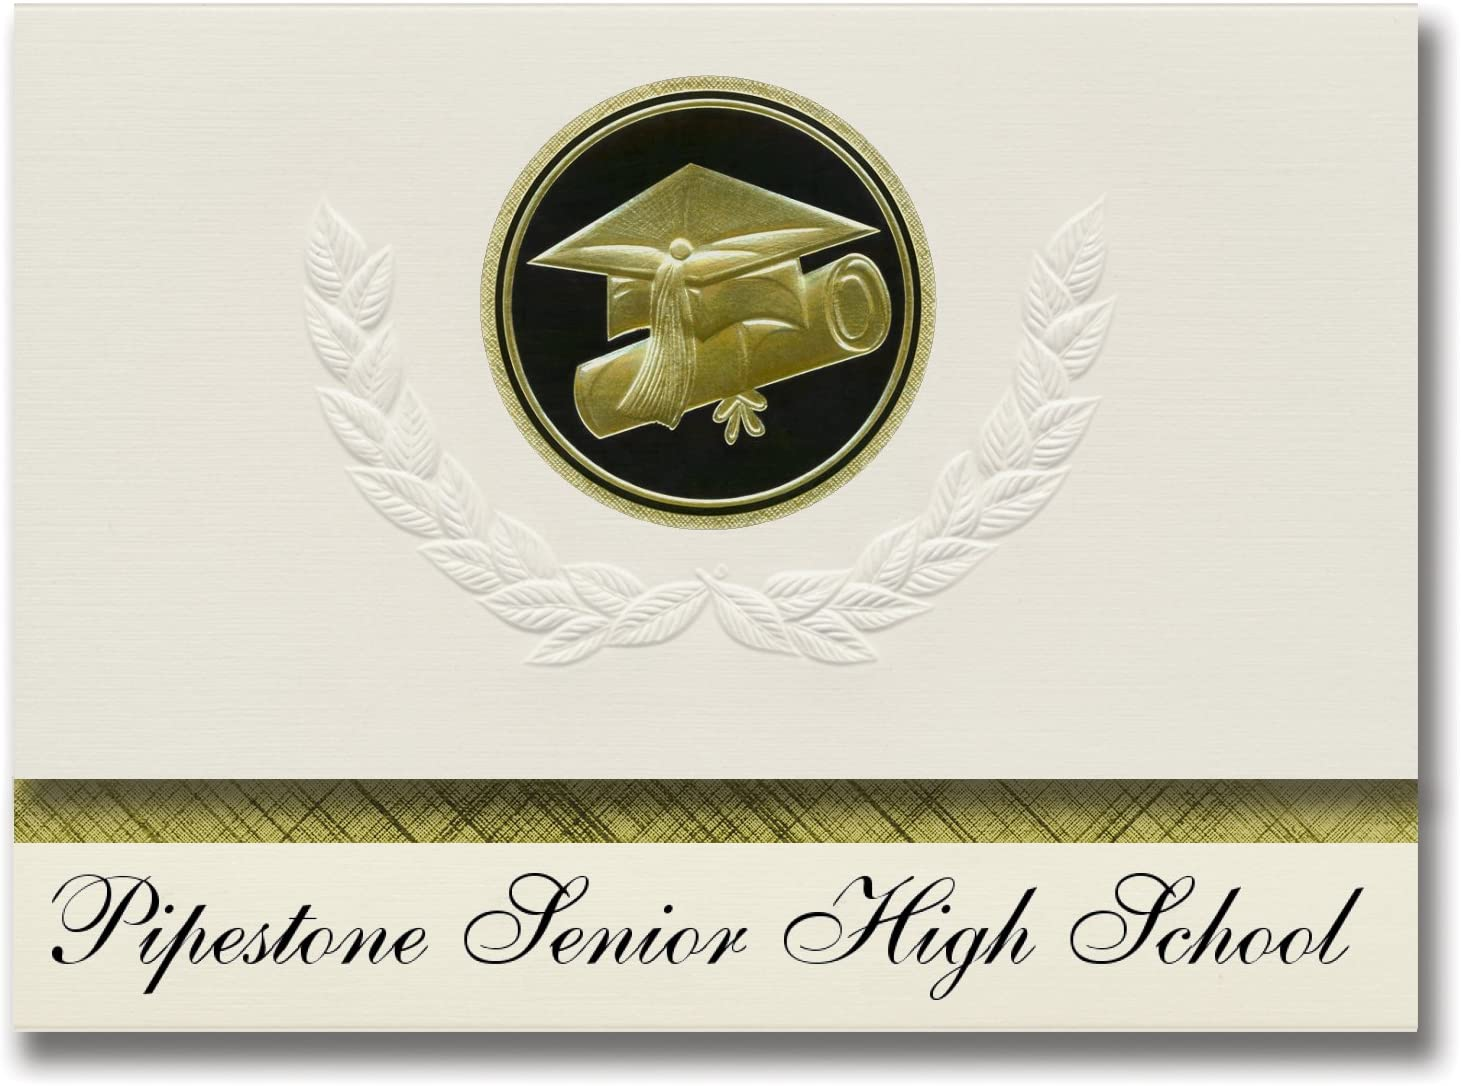 Signature Announcements Pipestone Senior High School (Pipestone, MN) Graduation Announcements, Presidential style, Elite package of 25 Cap & Diploma Seal Black & Gold